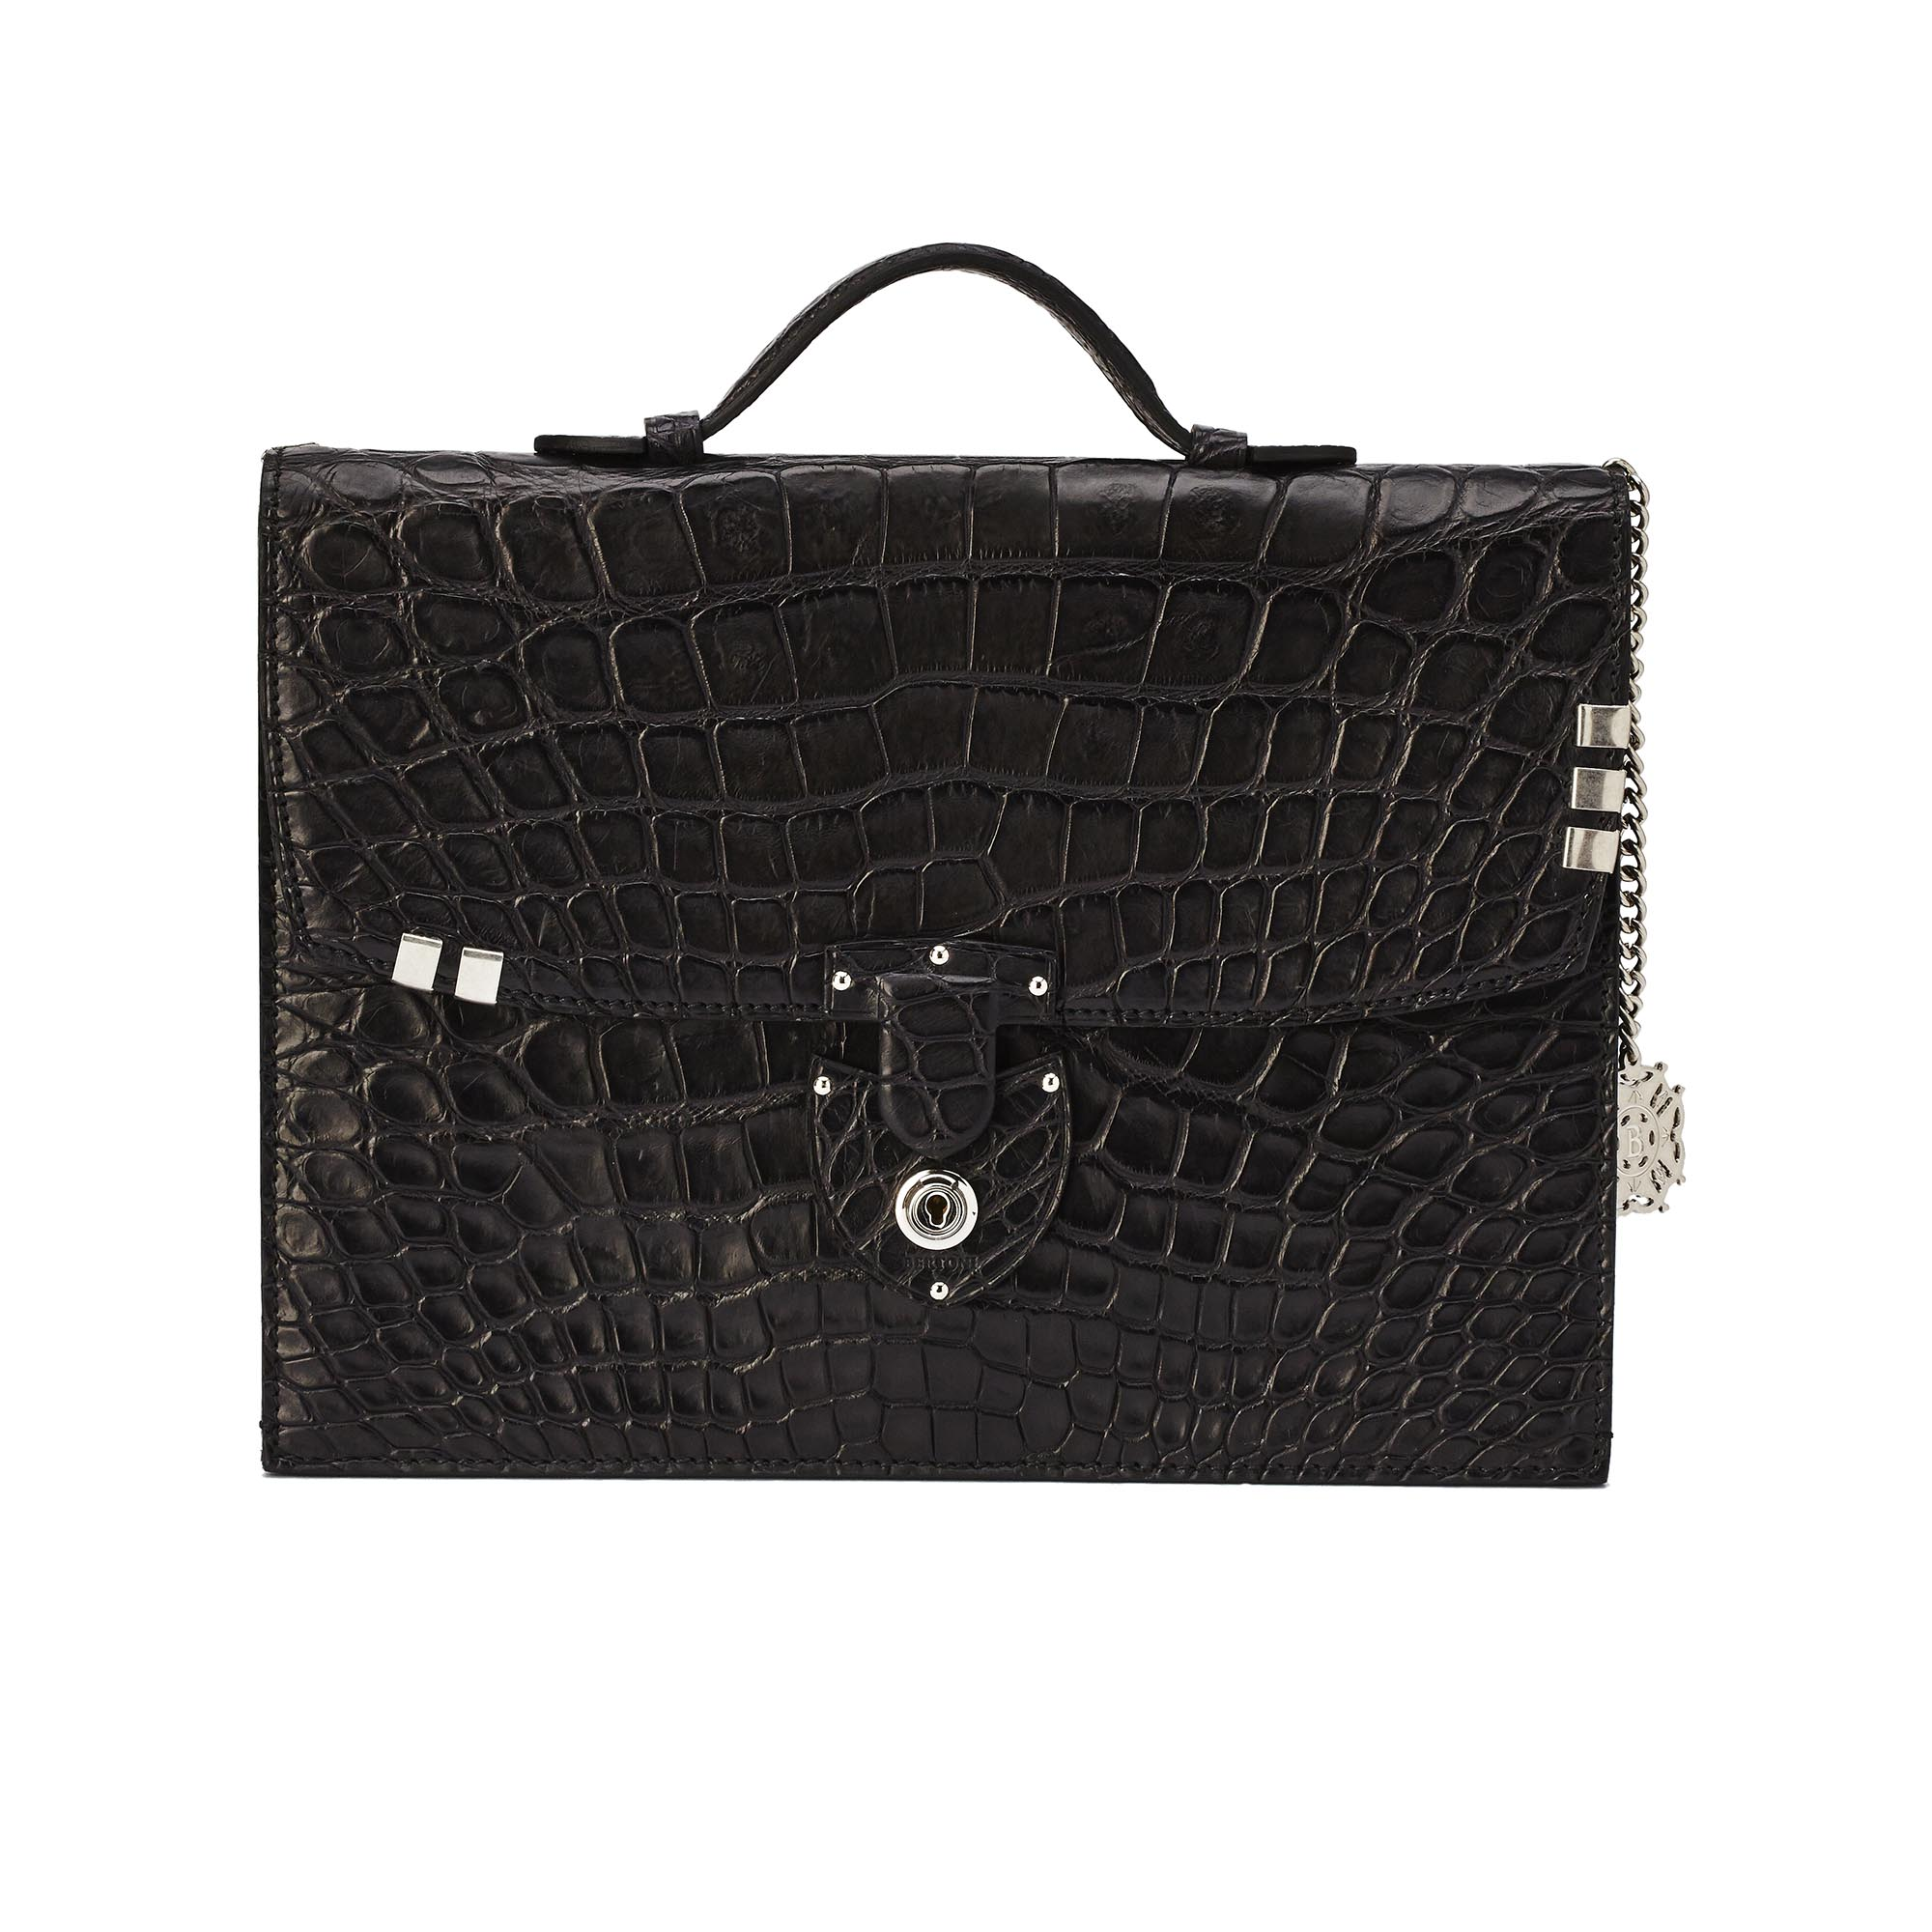 Signature-Bike-black-alligator-bag-Bertoni-1949